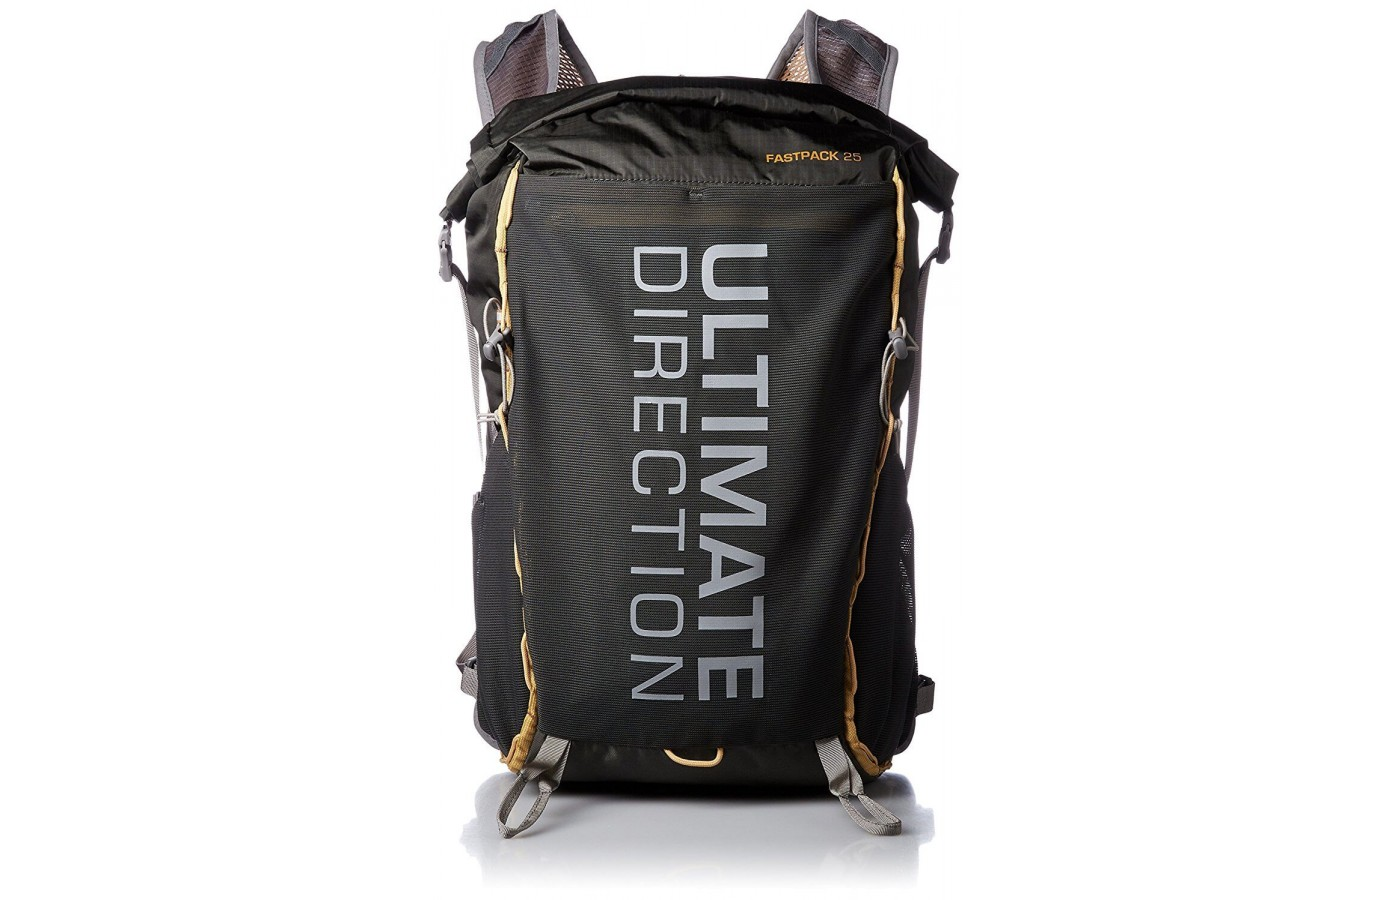 The Ultimate Direction Fast Pack 25 is a versatile pack that can take a runner from speedy day runs to overnight trips.